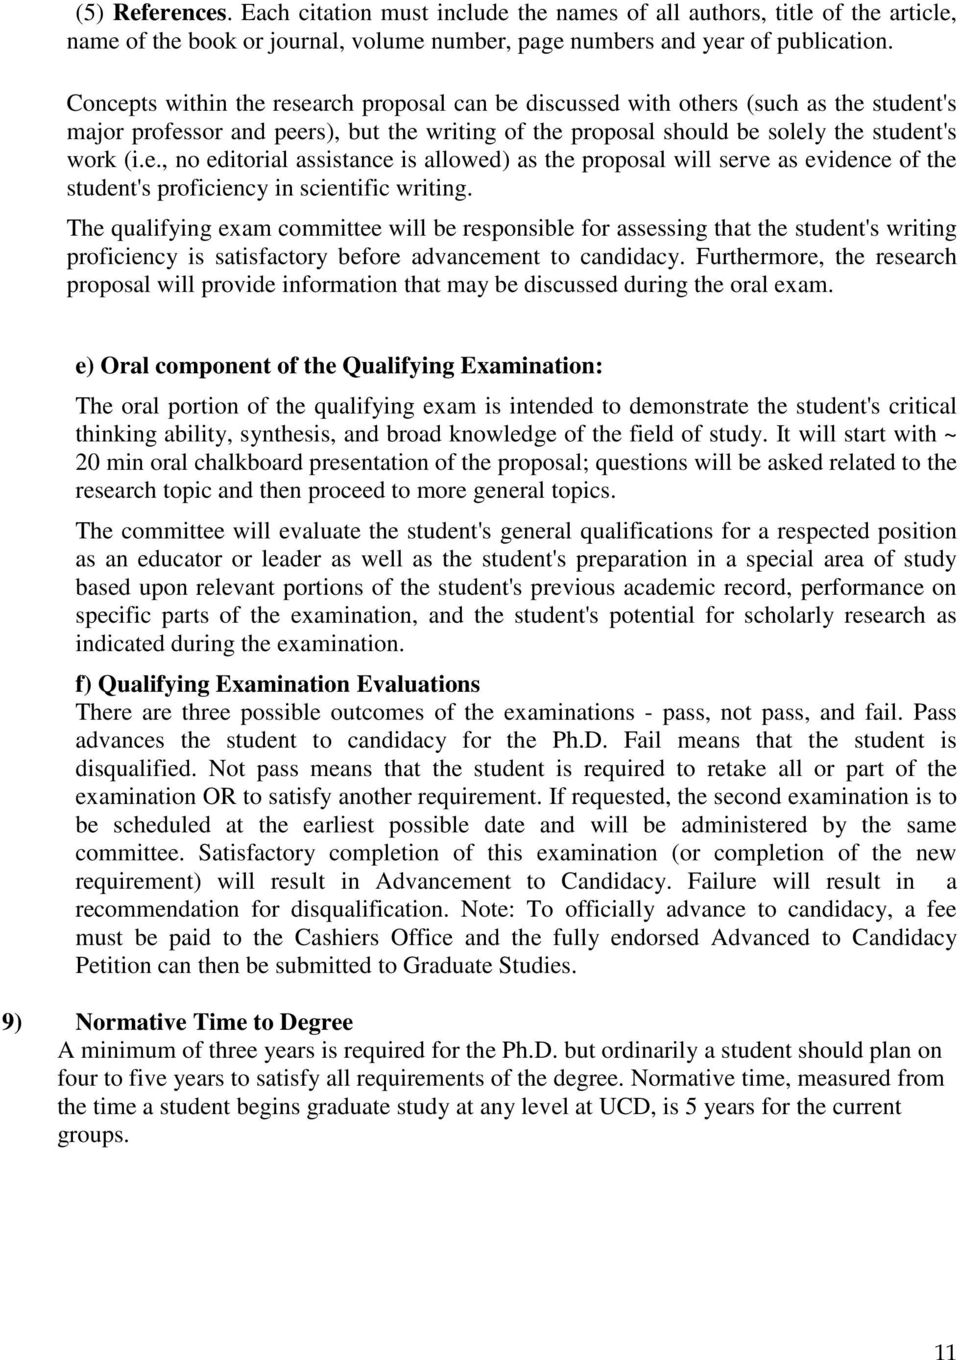 The qualifying exam committee will be responsible for assessing that the student's writing proficiency is satisfactory before advancement to candidacy.